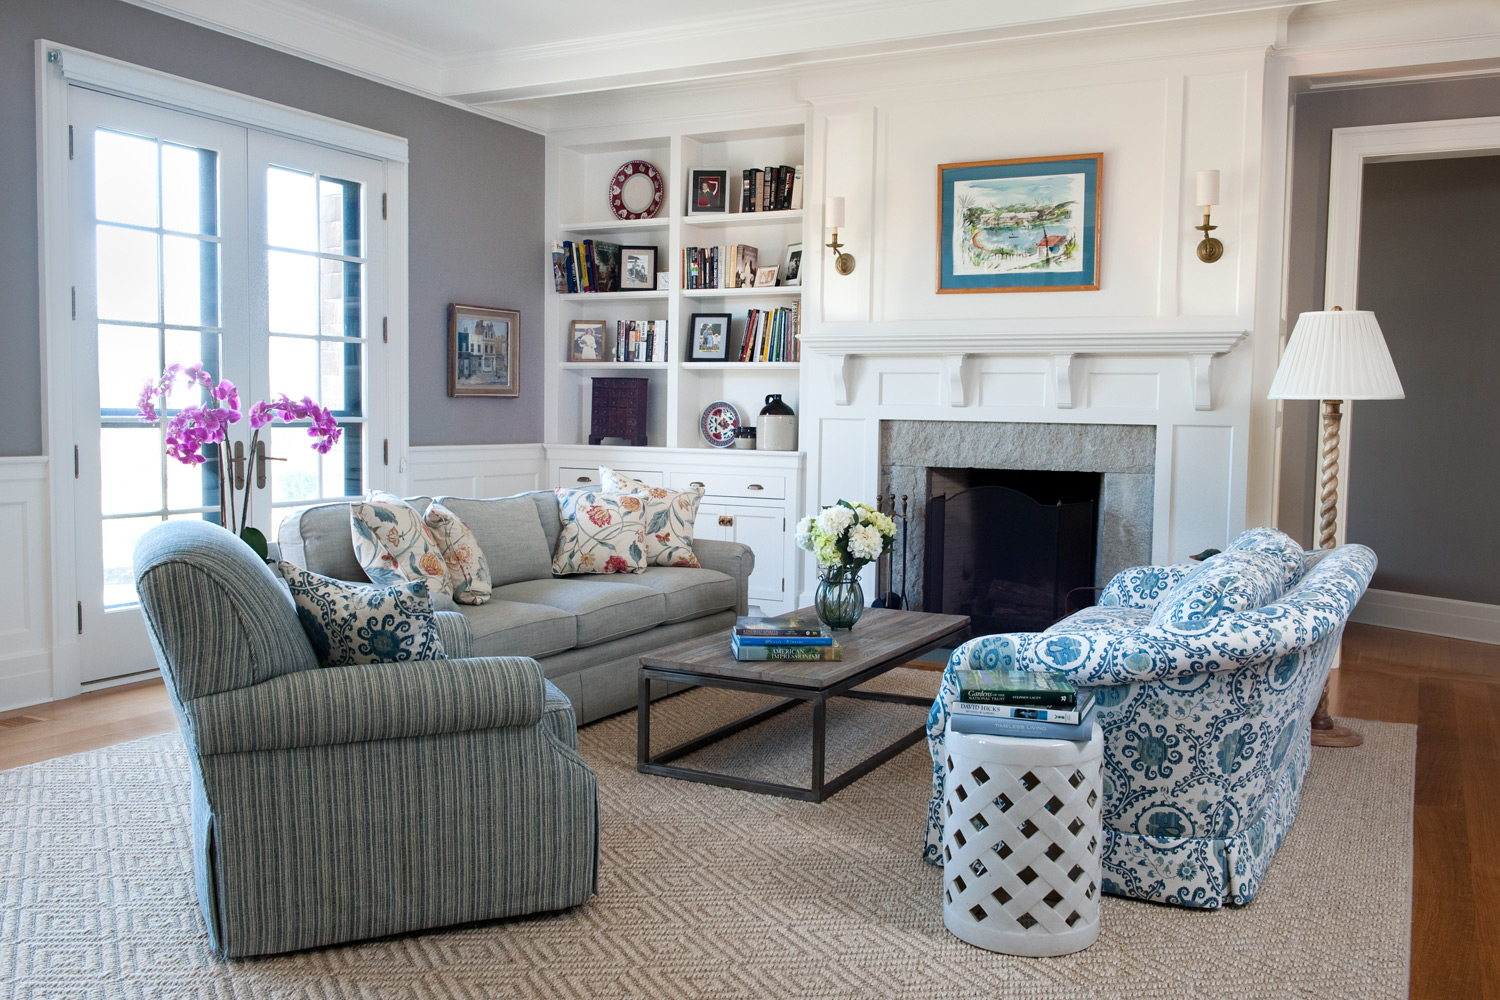 Coastal New England | Julie Warburton Design